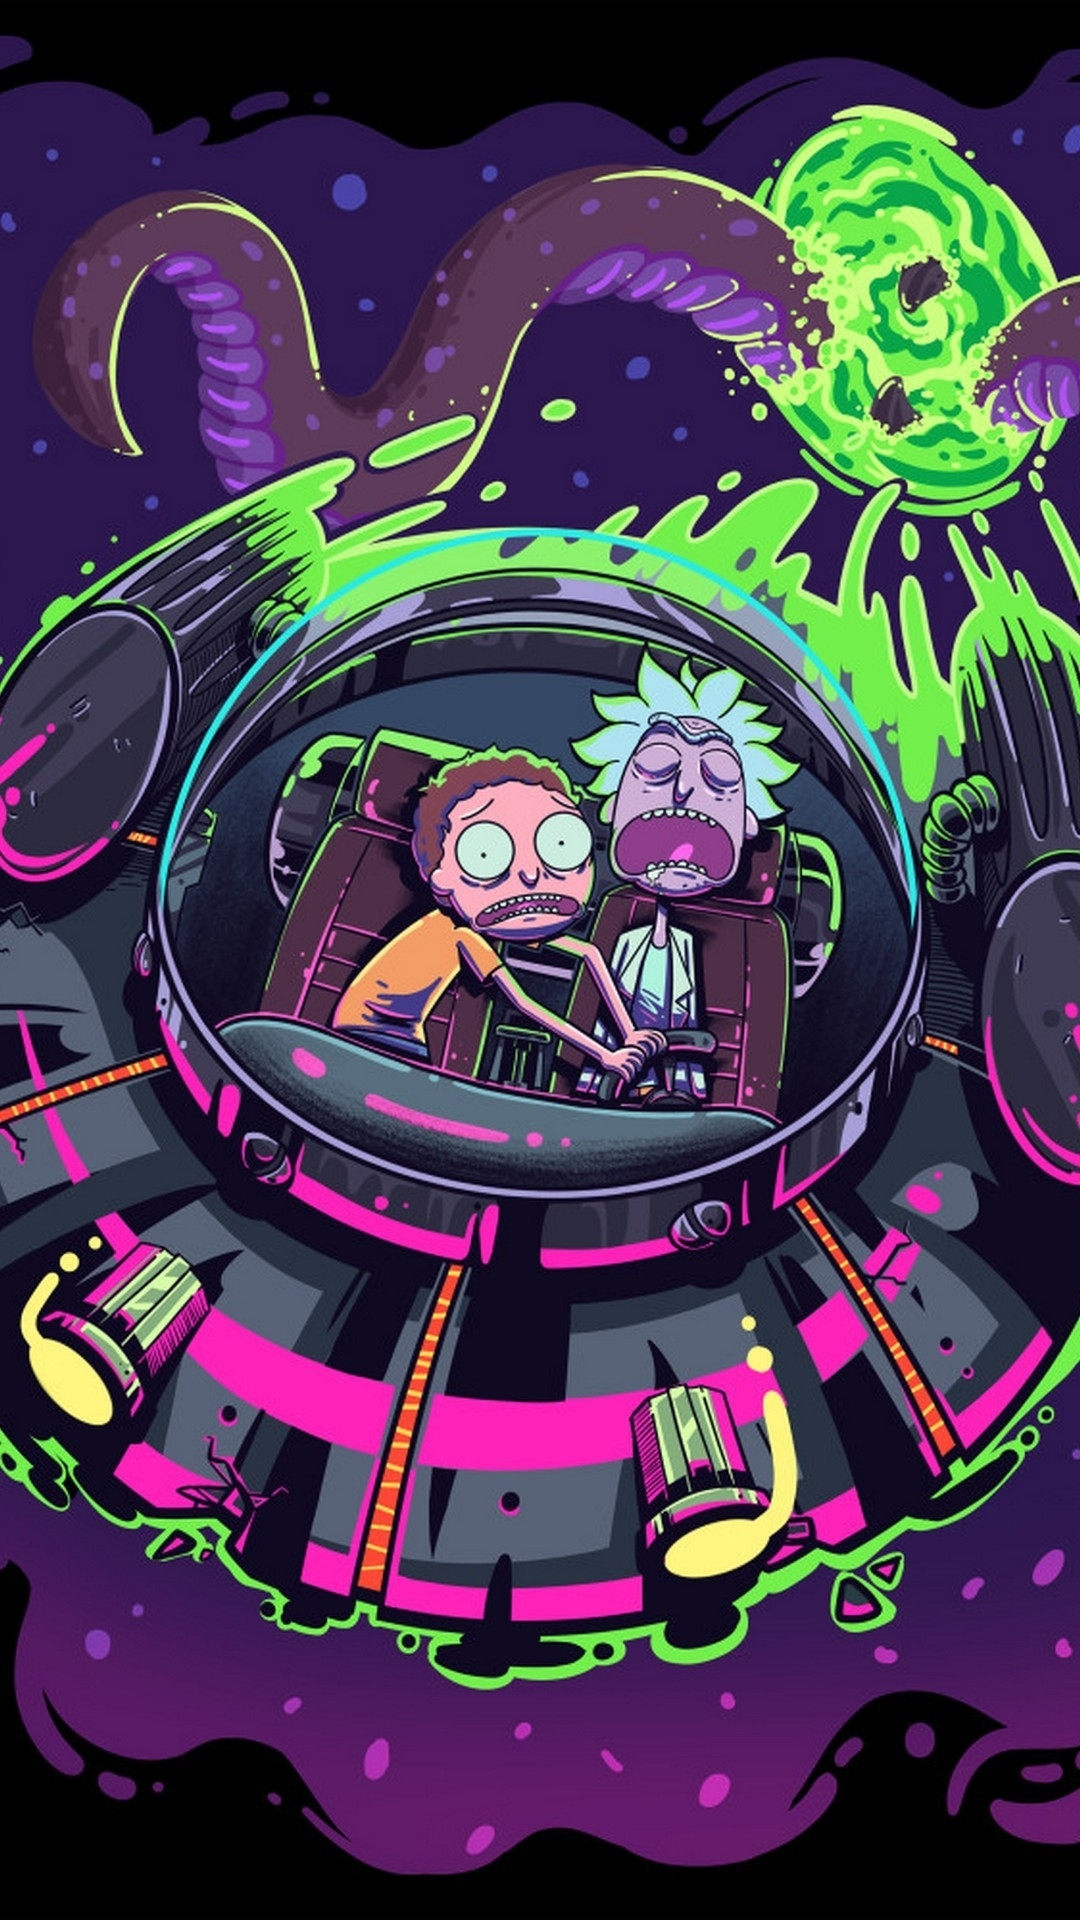 rick and morty season 3 wallpapers 87+ - page 3 of 3 - xshyfc